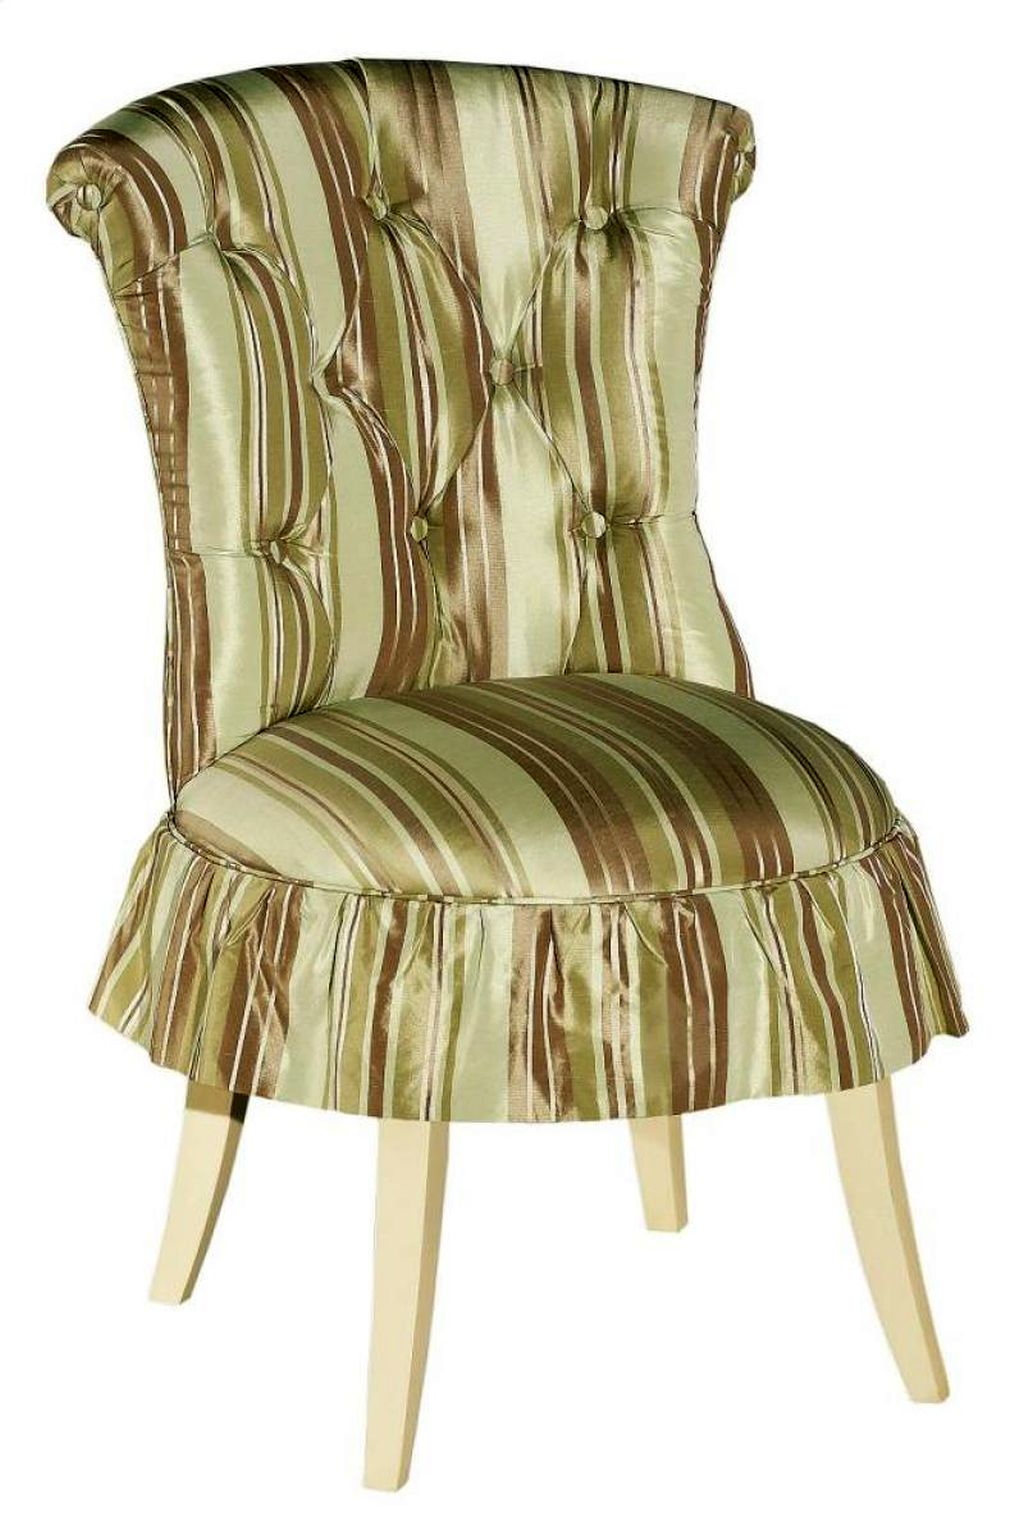 Cute Hickory Vanity Chair With Skirt